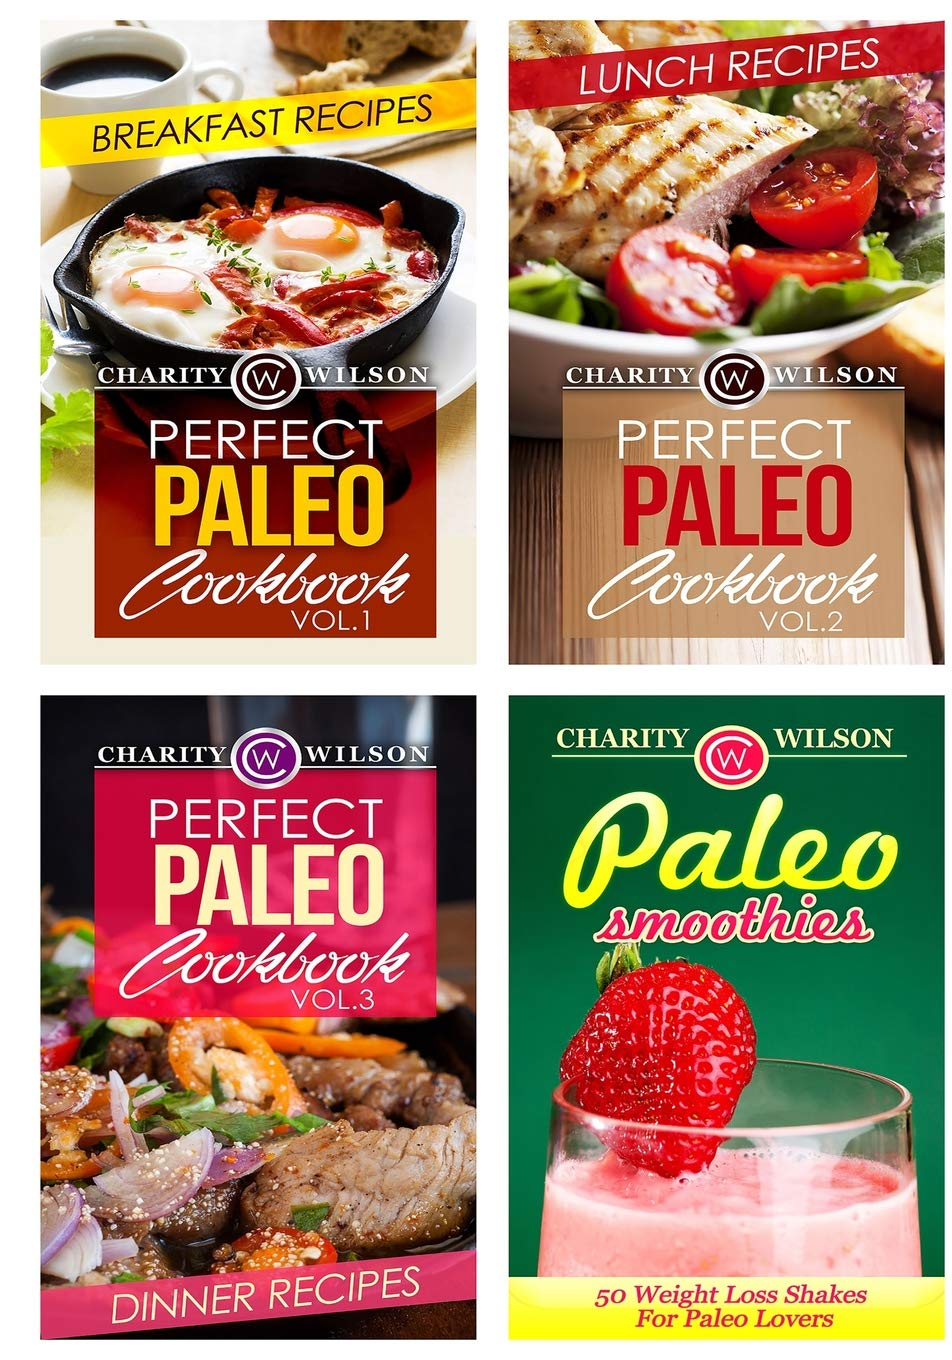 Perfect Paleo Diet Cookbook Box Set: Paleo Diet Recipes: Breakfast, Lunch, Dinner And Smoothie Recipes pdf